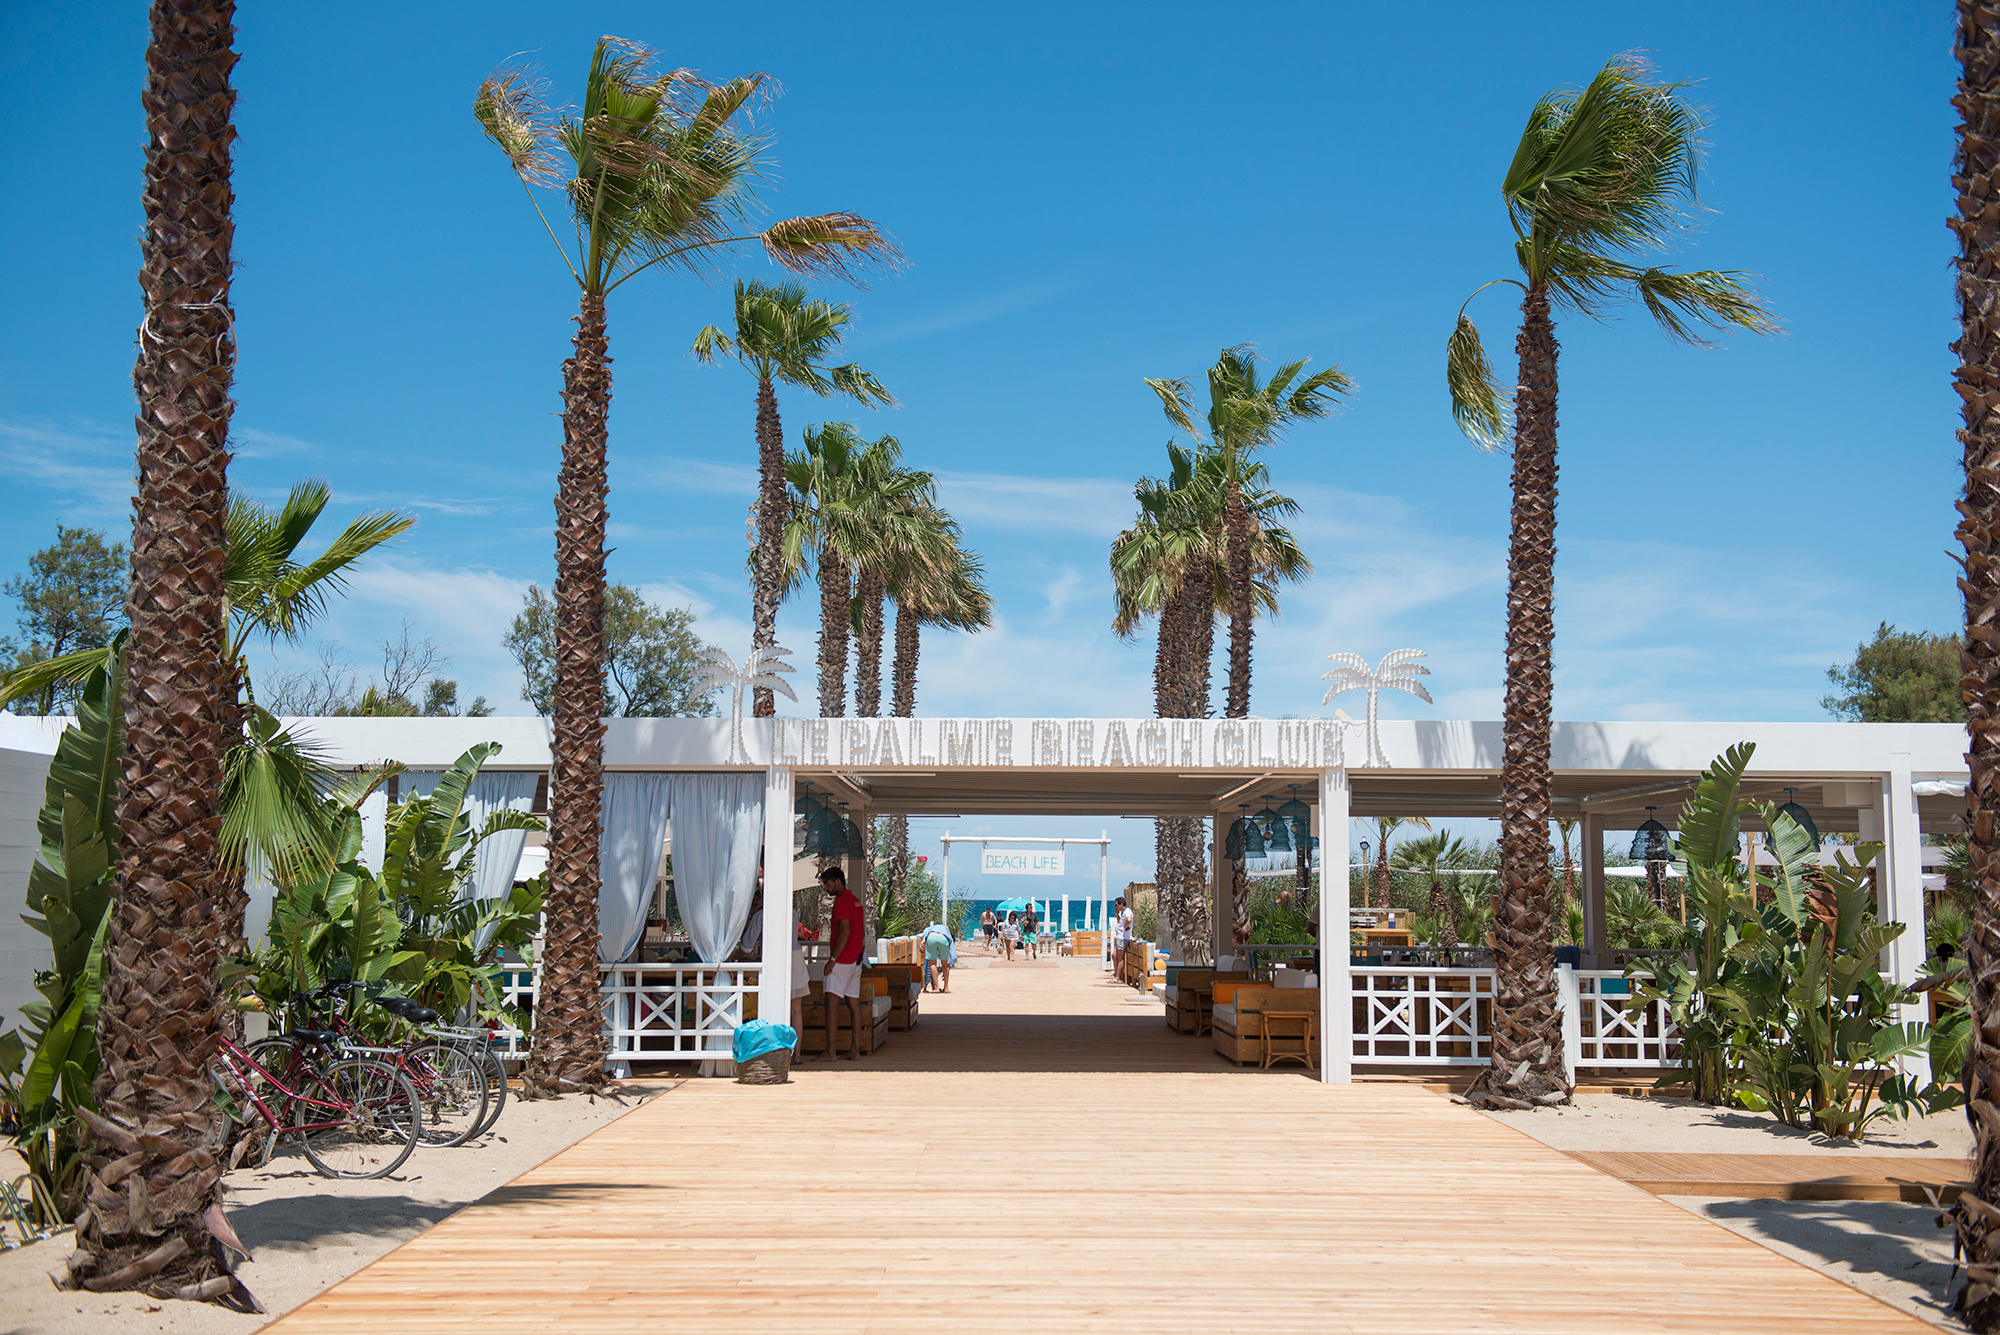 Le Palme Beach Club Fish Restaurant & Pizzeria